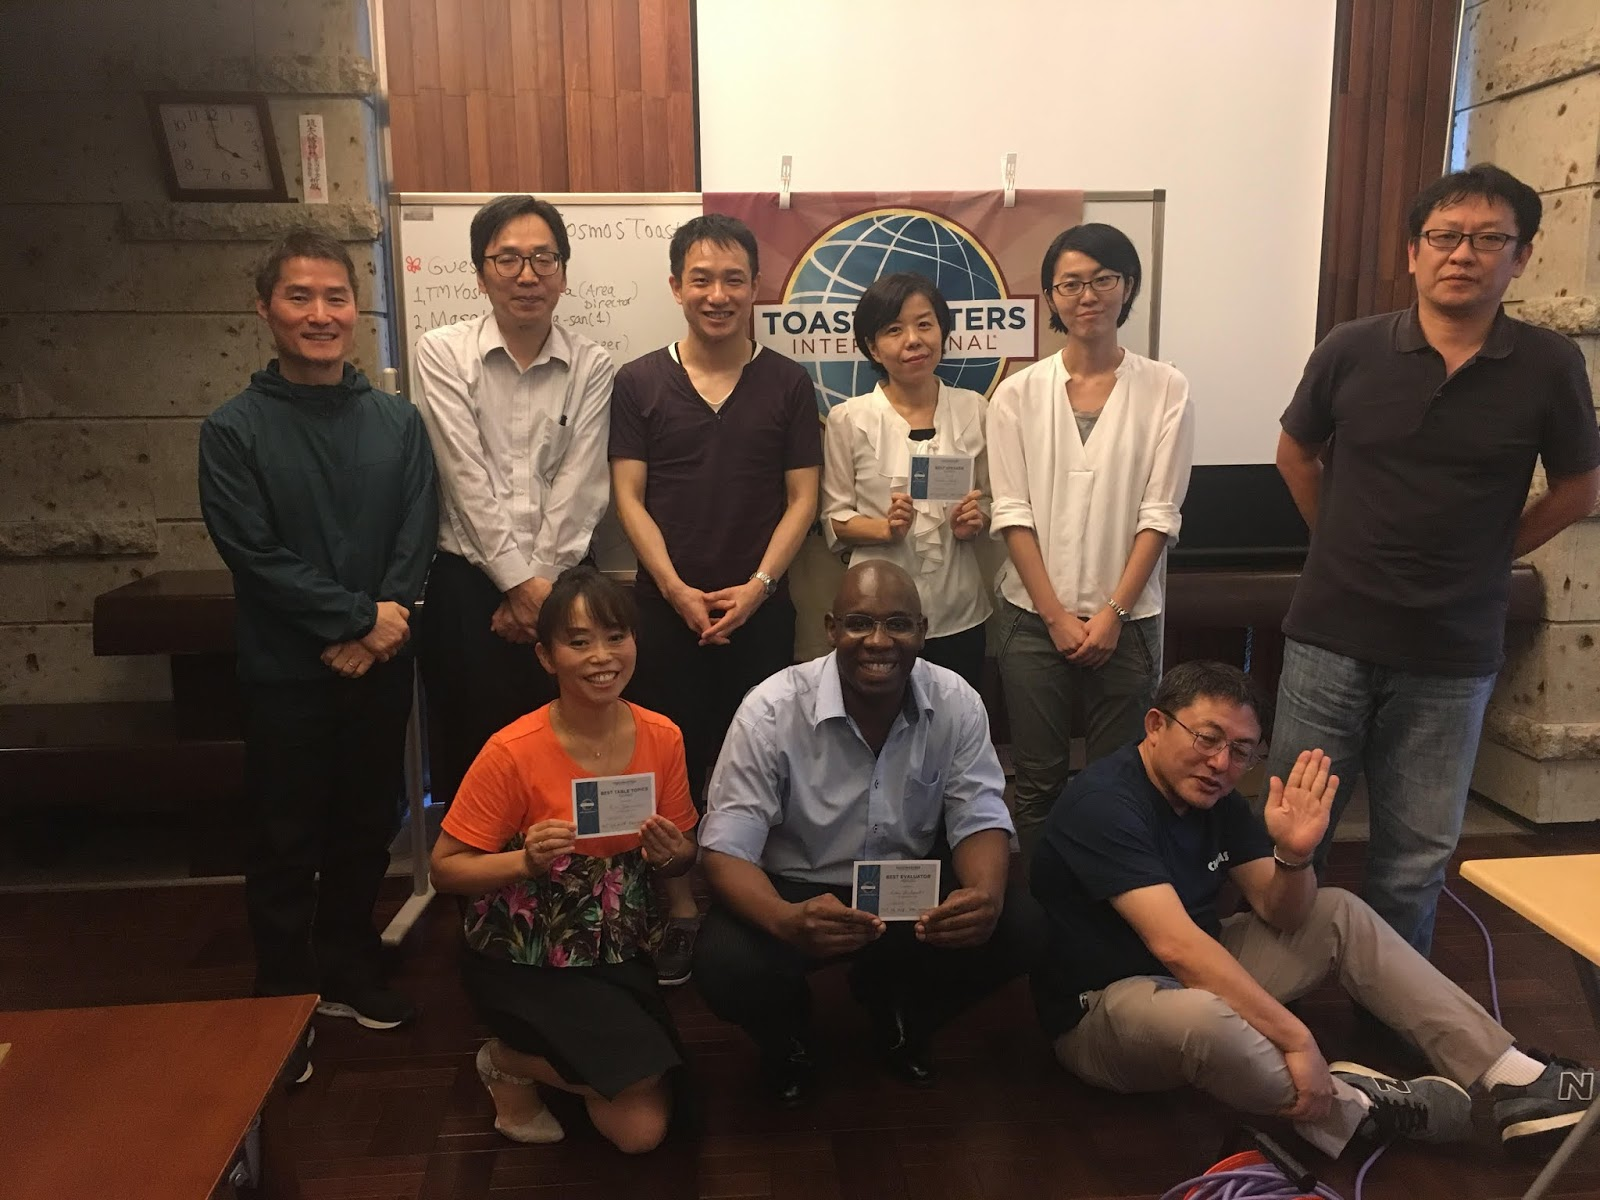 Meeting Report on 10/6 | Cosmos Toastmasters Club - コスモス